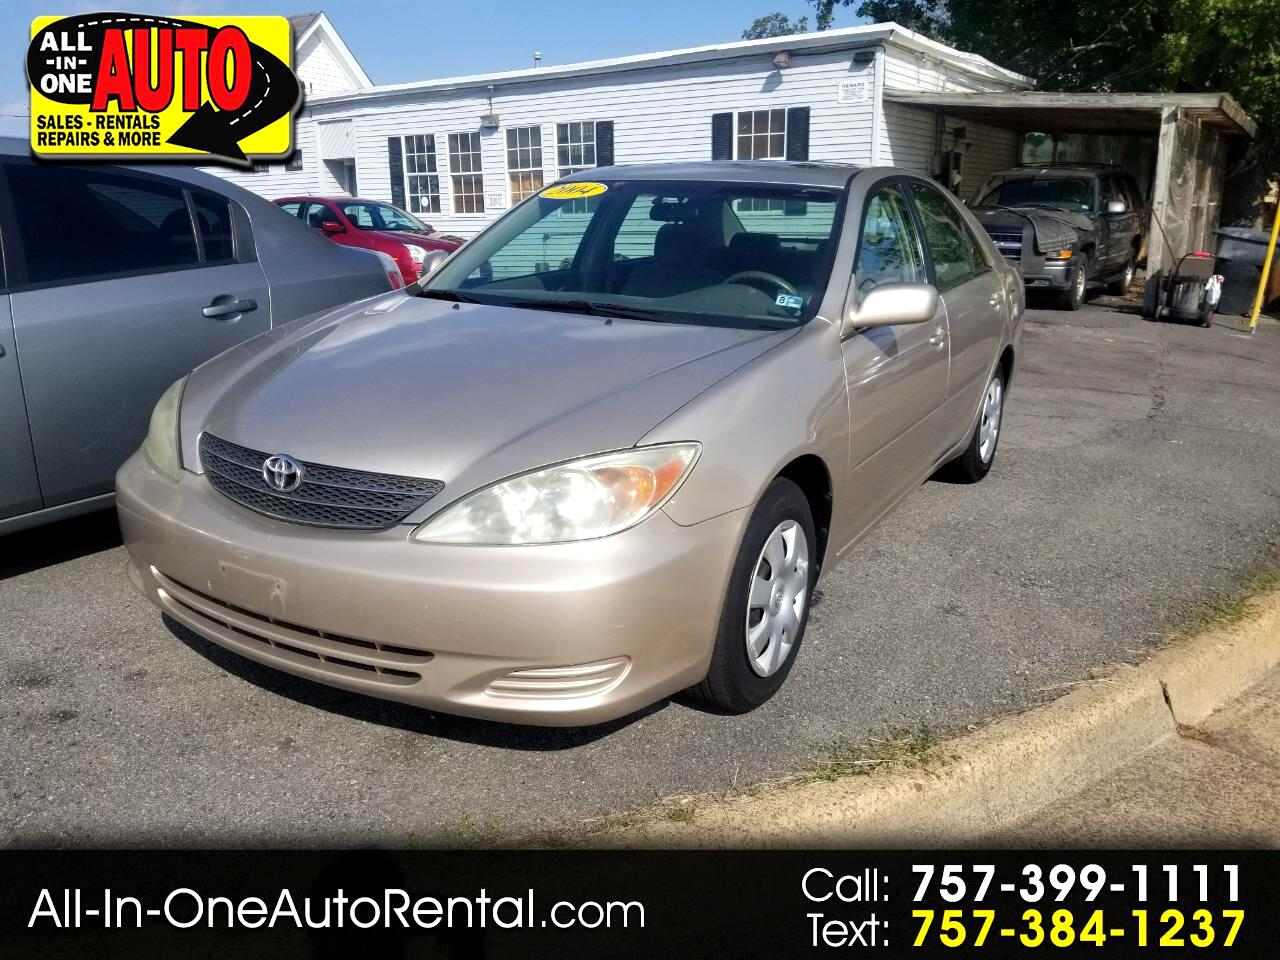 2004 Toyota Camry 4dr Sdn LE Auto (Natl)